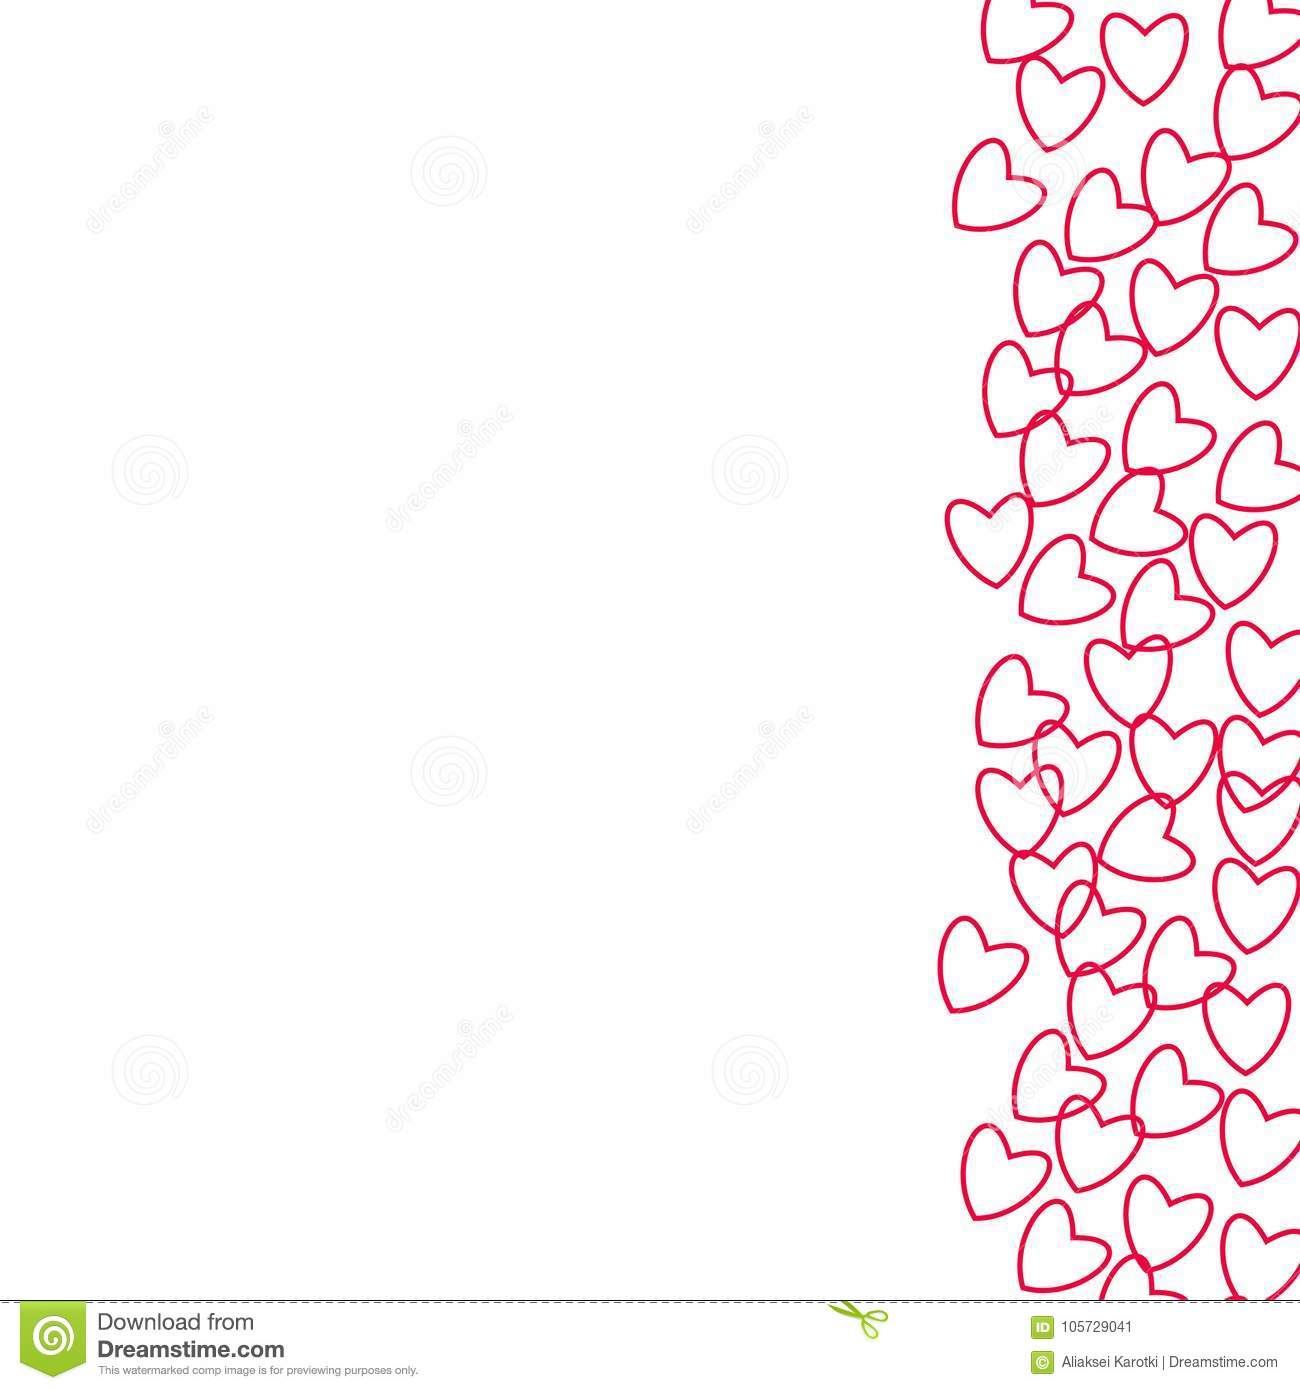 Frame Of Hearts For Decoration Of Cards Invitations For